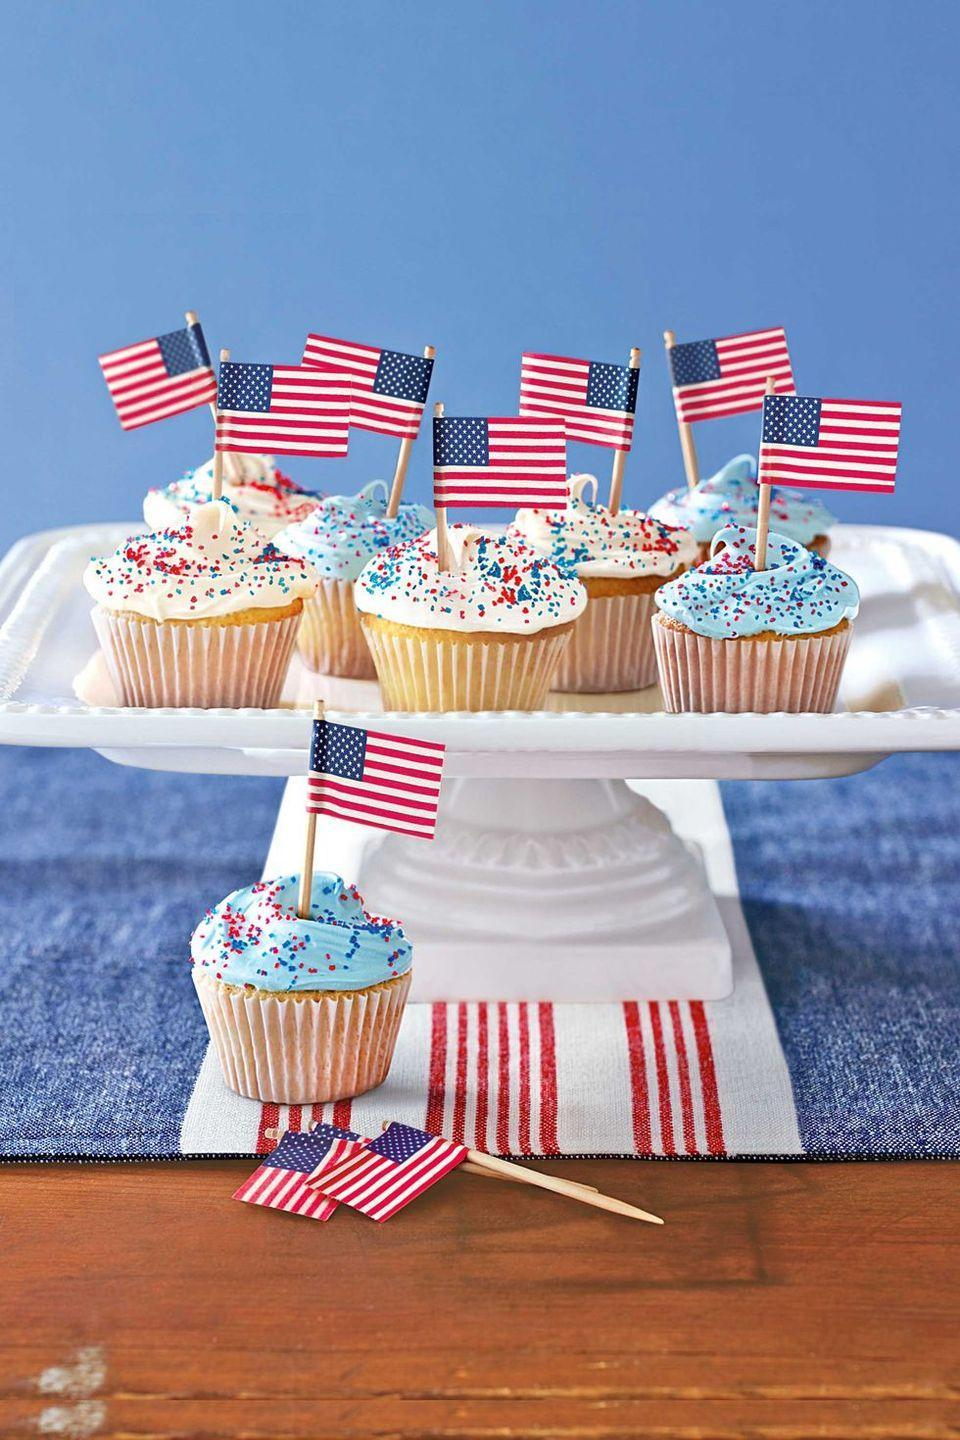 """<p>Red and blue sprinkles — plus mini American flags — add the perfect all-star touch to these <a href=""""https://www.goodhousekeeping.com/food-recipes/a28565483/vanilla-cupcakes-recipe/"""" rel=""""nofollow noopener"""" target=""""_blank"""" data-ylk=""""slk:classic vanilla cupcakes"""" class=""""link rapid-noclick-resp"""">classic vanilla cupcakes</a>.</p><p><em><a href=""""https://www.countryliving.com/food-drinks/recipes/a28340/patriotic-cupcakes-121077/"""" rel=""""nofollow noopener"""" target=""""_blank"""" data-ylk=""""slk:Get the recipe from Country Living »"""" class=""""link rapid-noclick-resp"""">Get the recipe from Country Living »</a></em> </p>"""